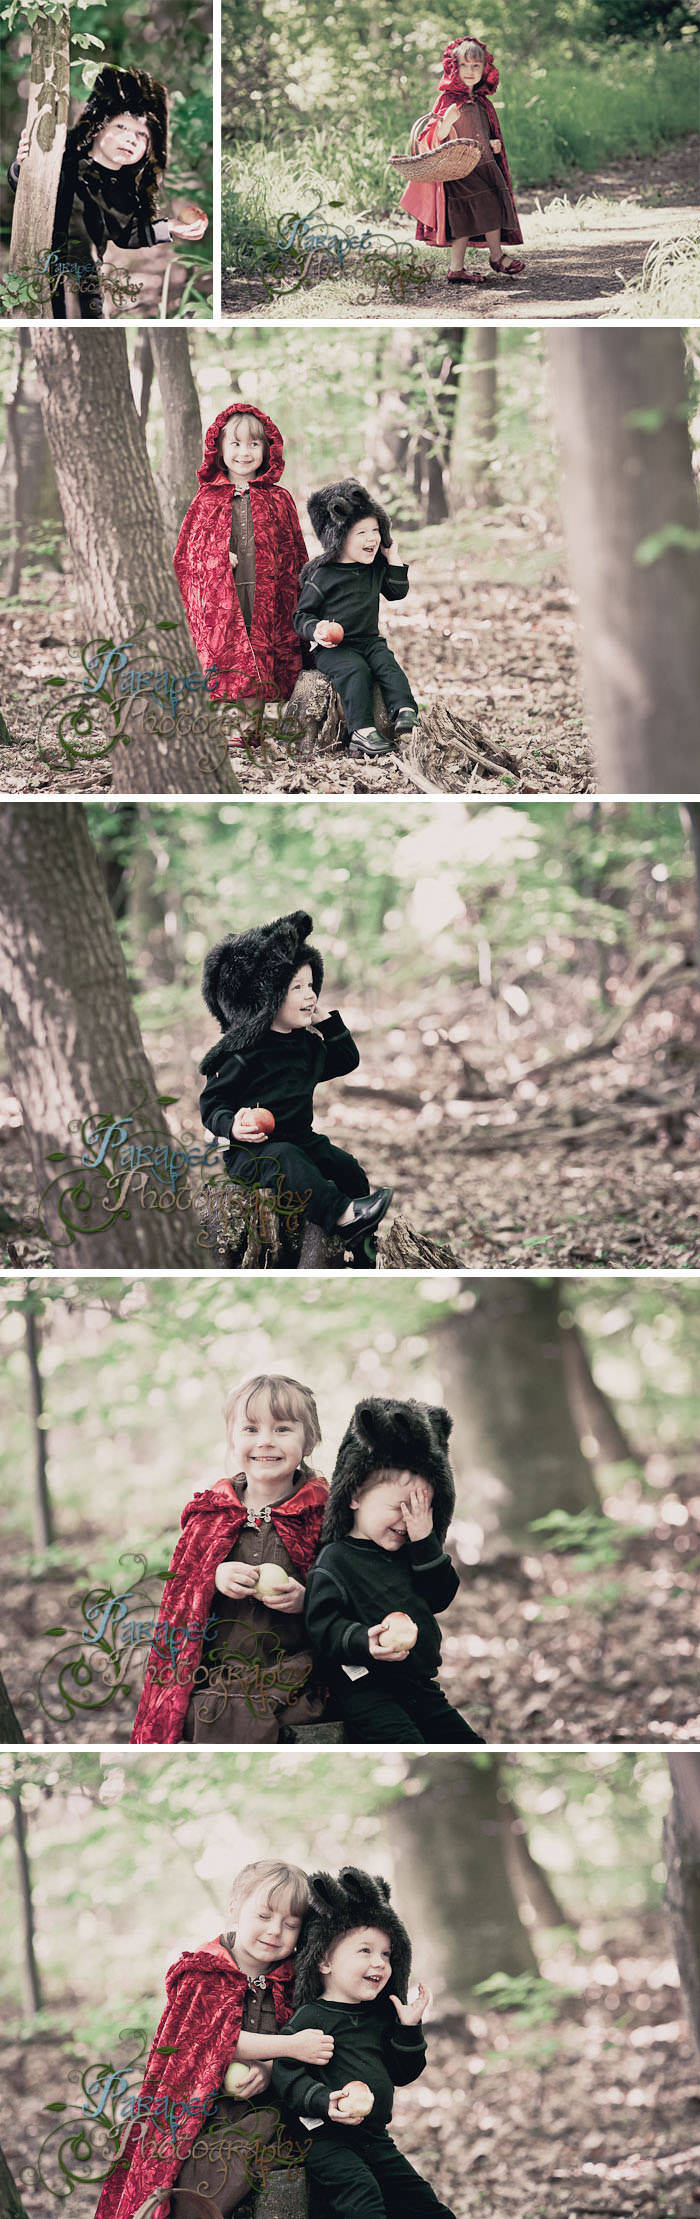 Little Red Riding Hood and the Big Bad Wolf themed photo shoot tutorial for kids